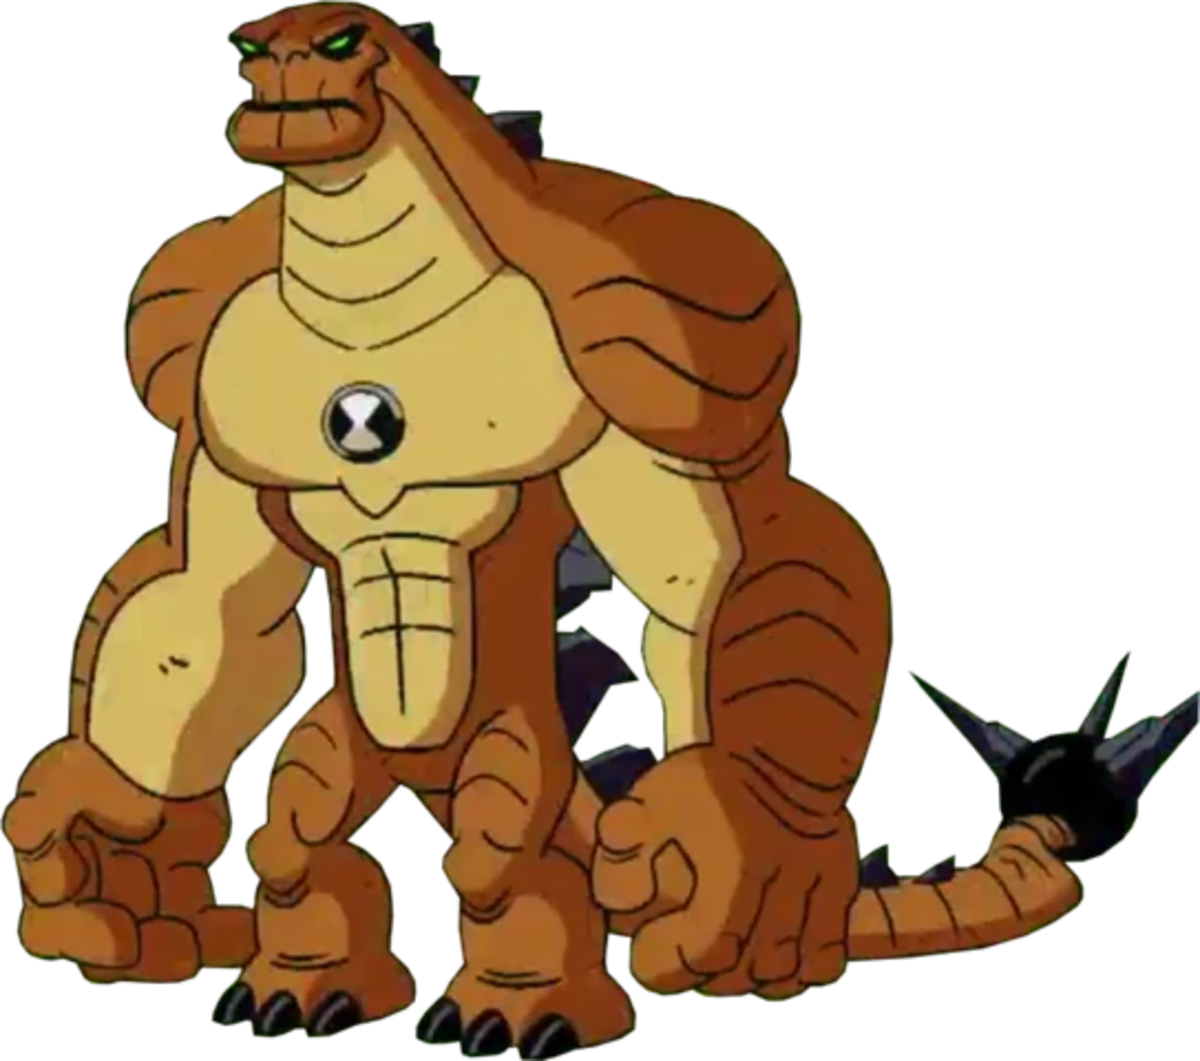 Humongousaur's appearance in the 2016 reboot of Ben 10.